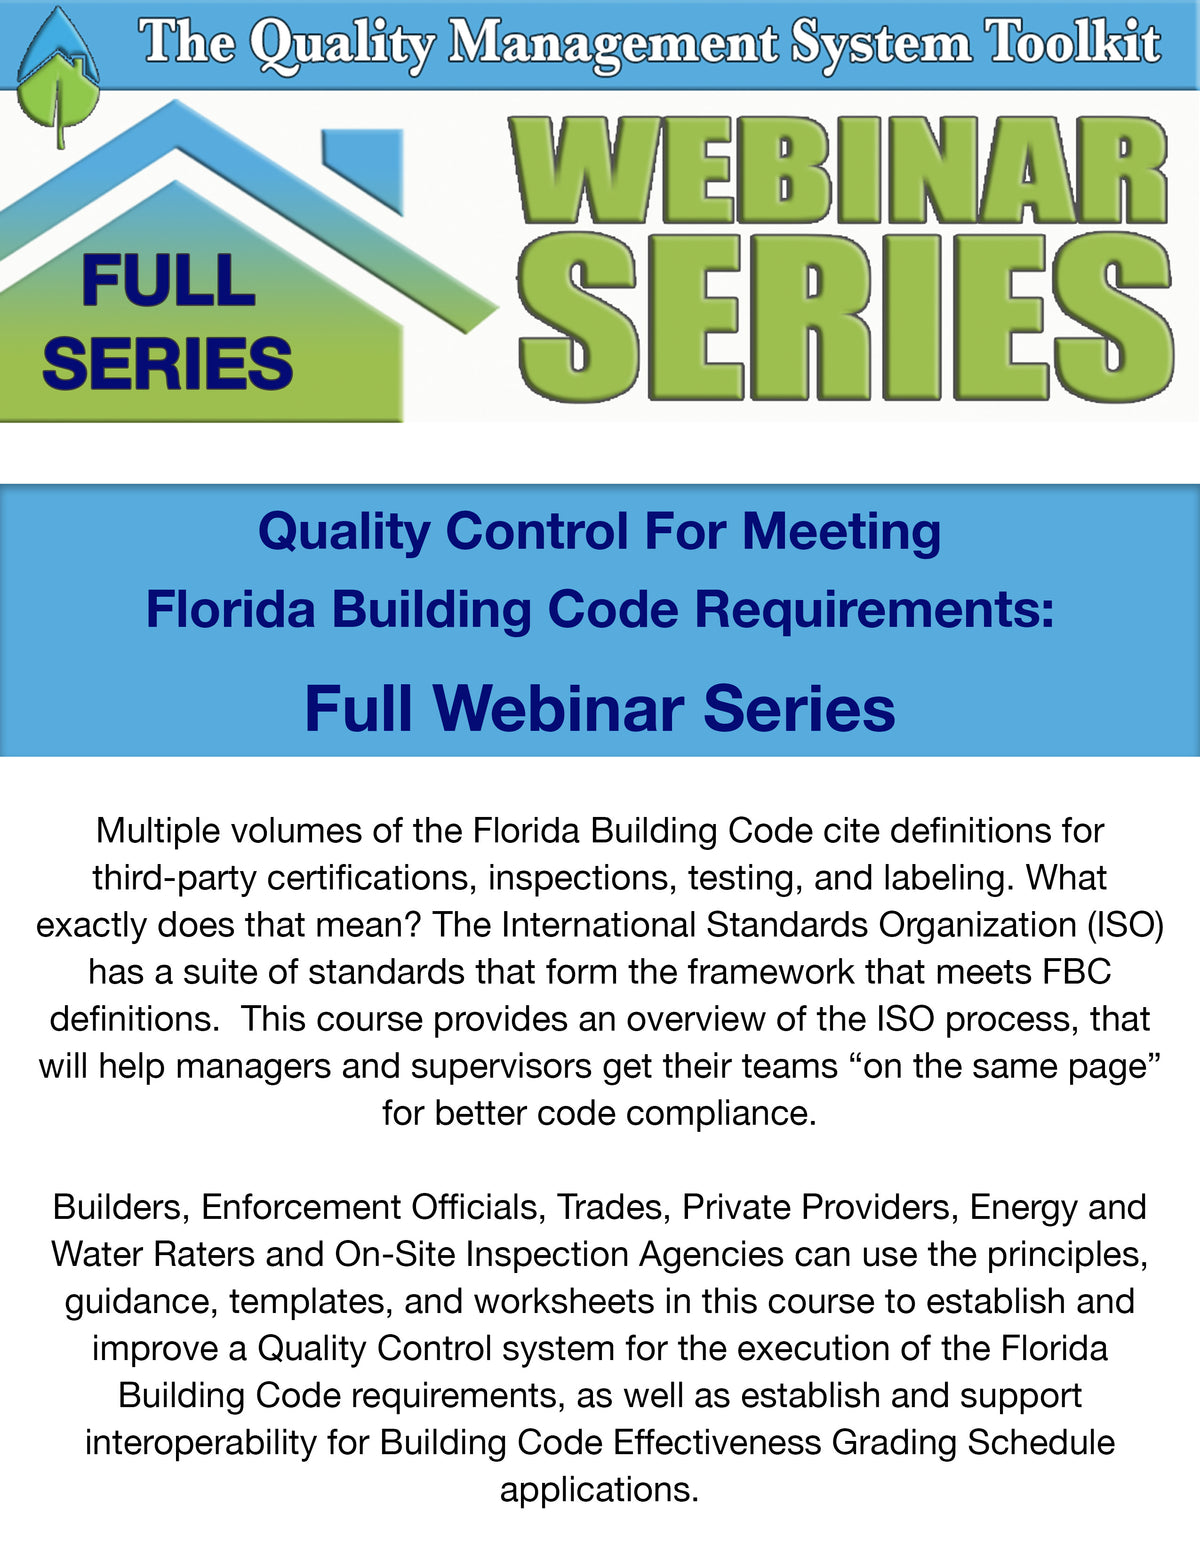 The Quality Management System Toolkit: Full Webinar Series